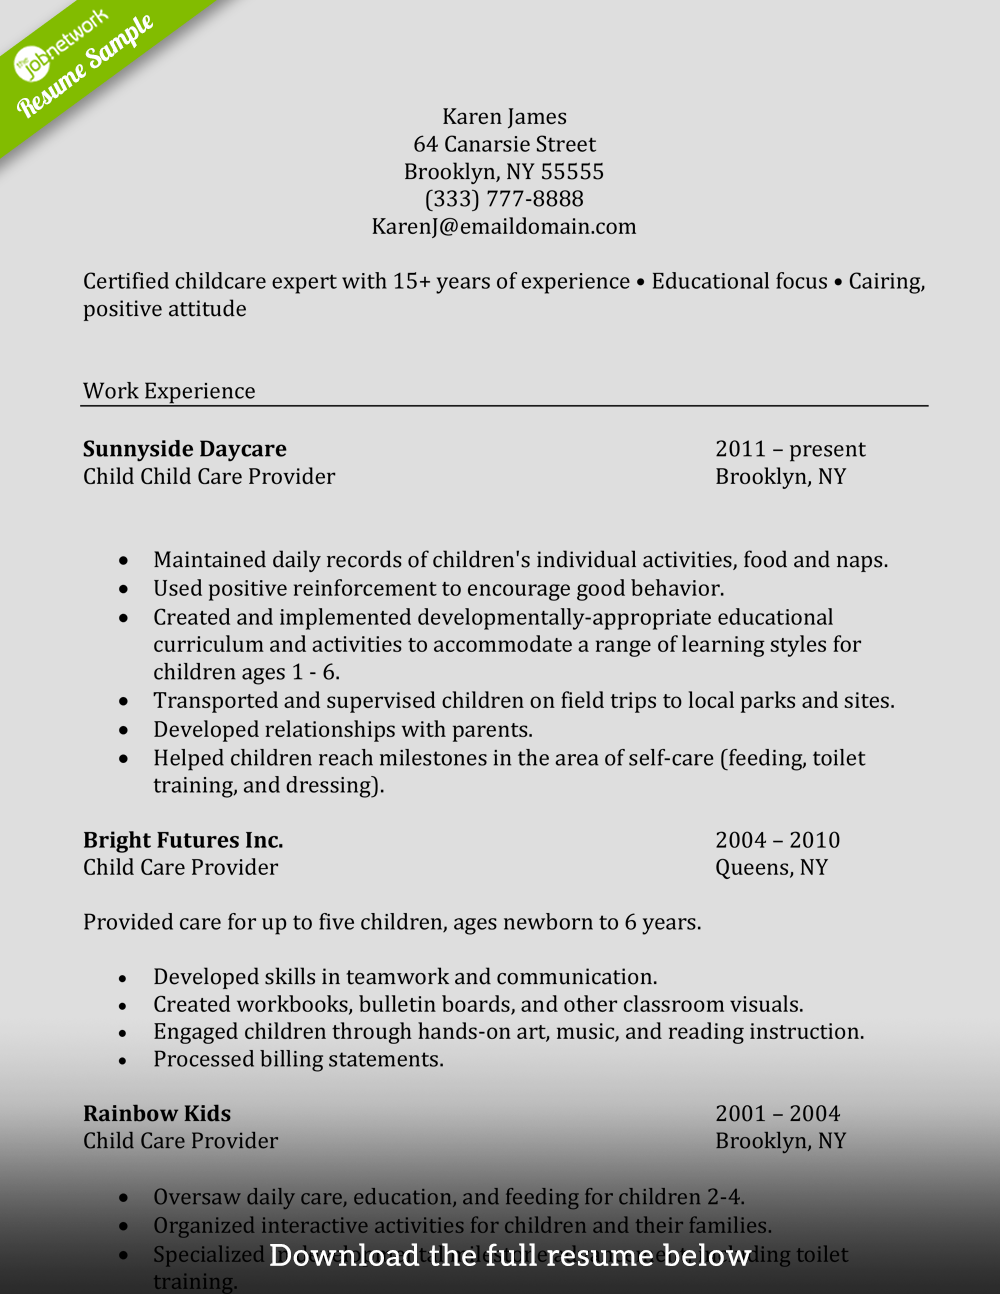 Resume Cv Cover Letter Cms Templates Wordpress Templates How To Write A Perfect Caregiver Resume Examples Included